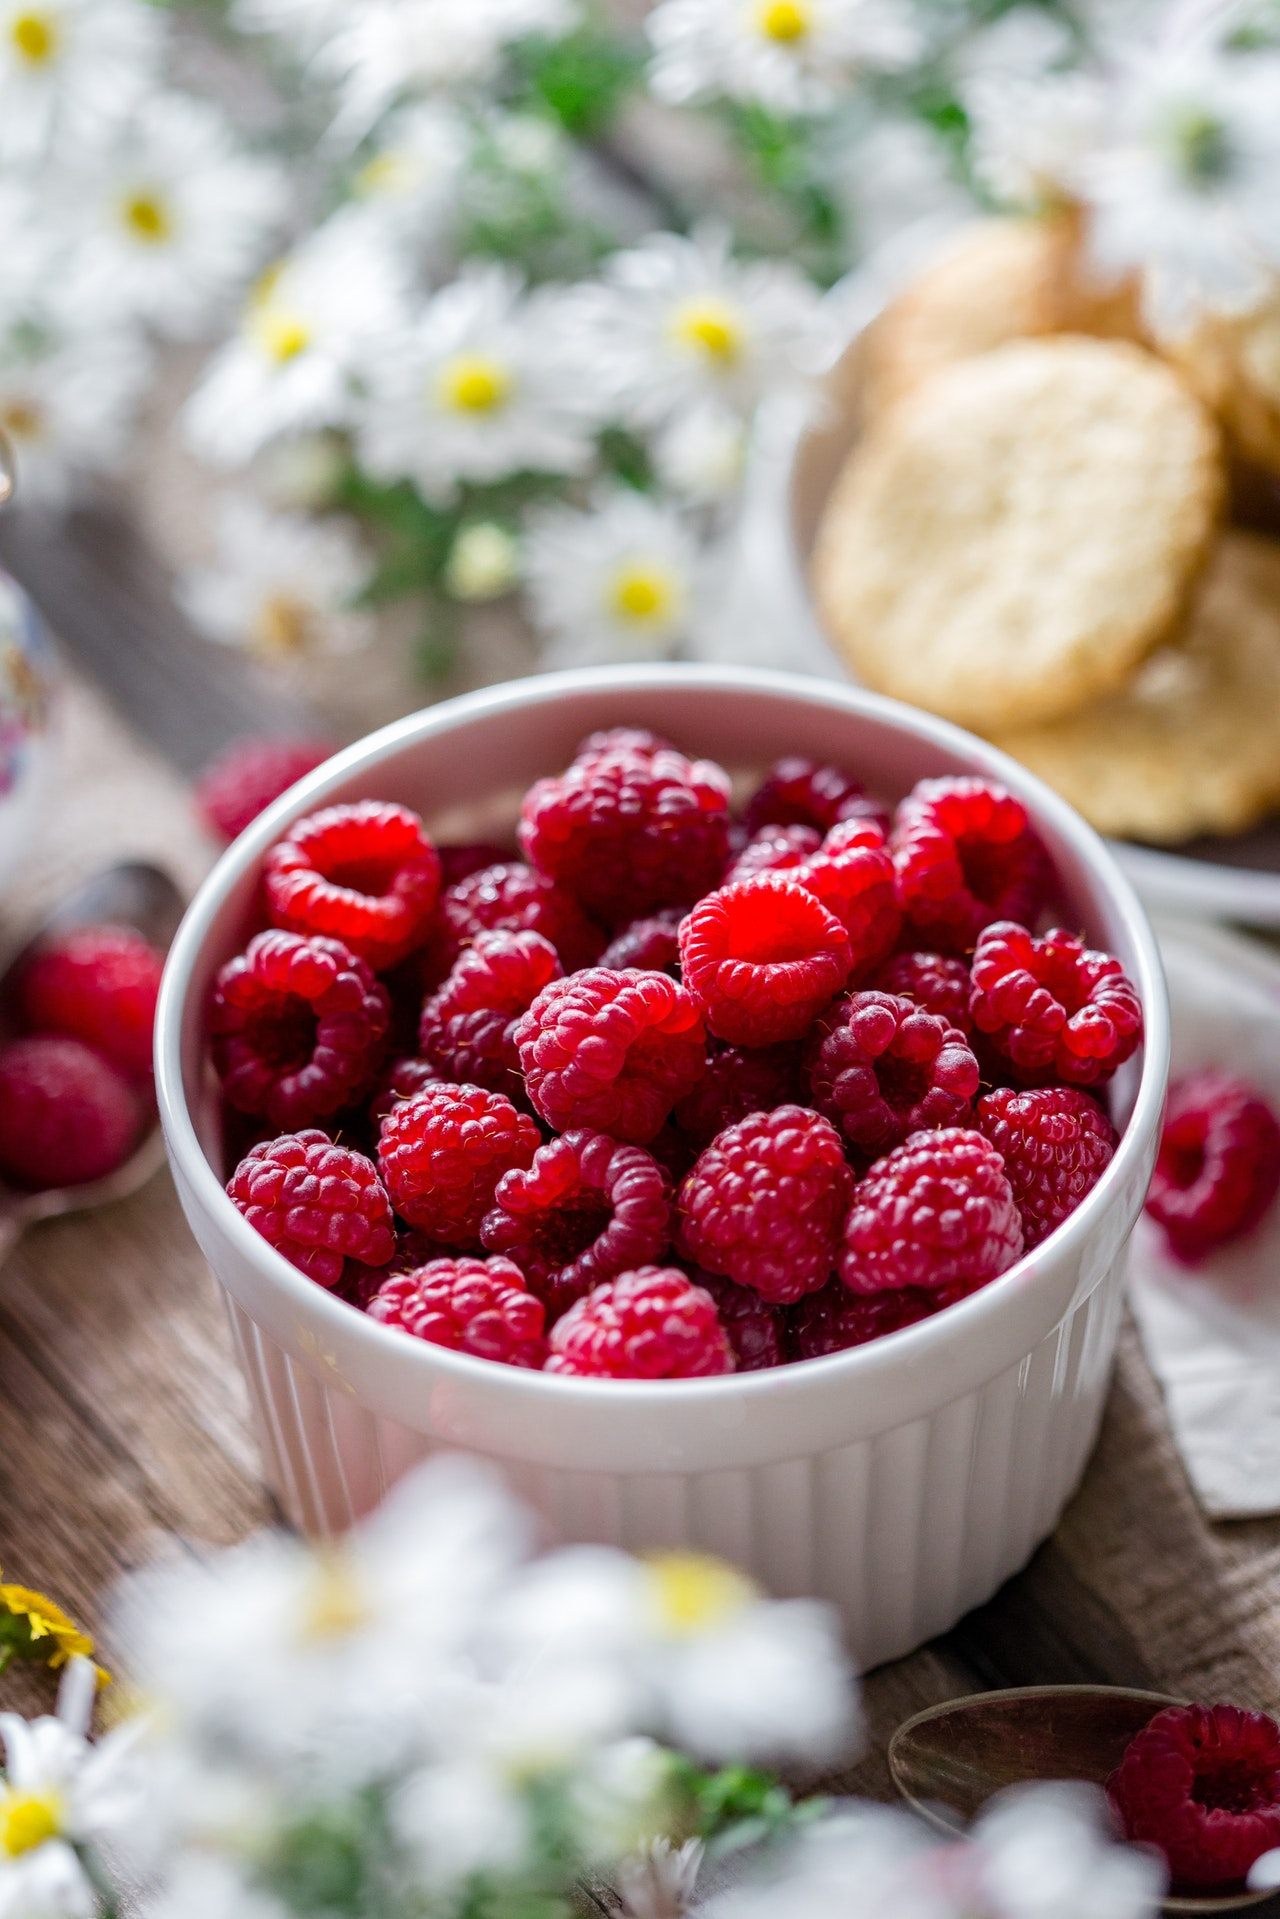 $$$ Why Raspberries Are Worth the Extra $$$